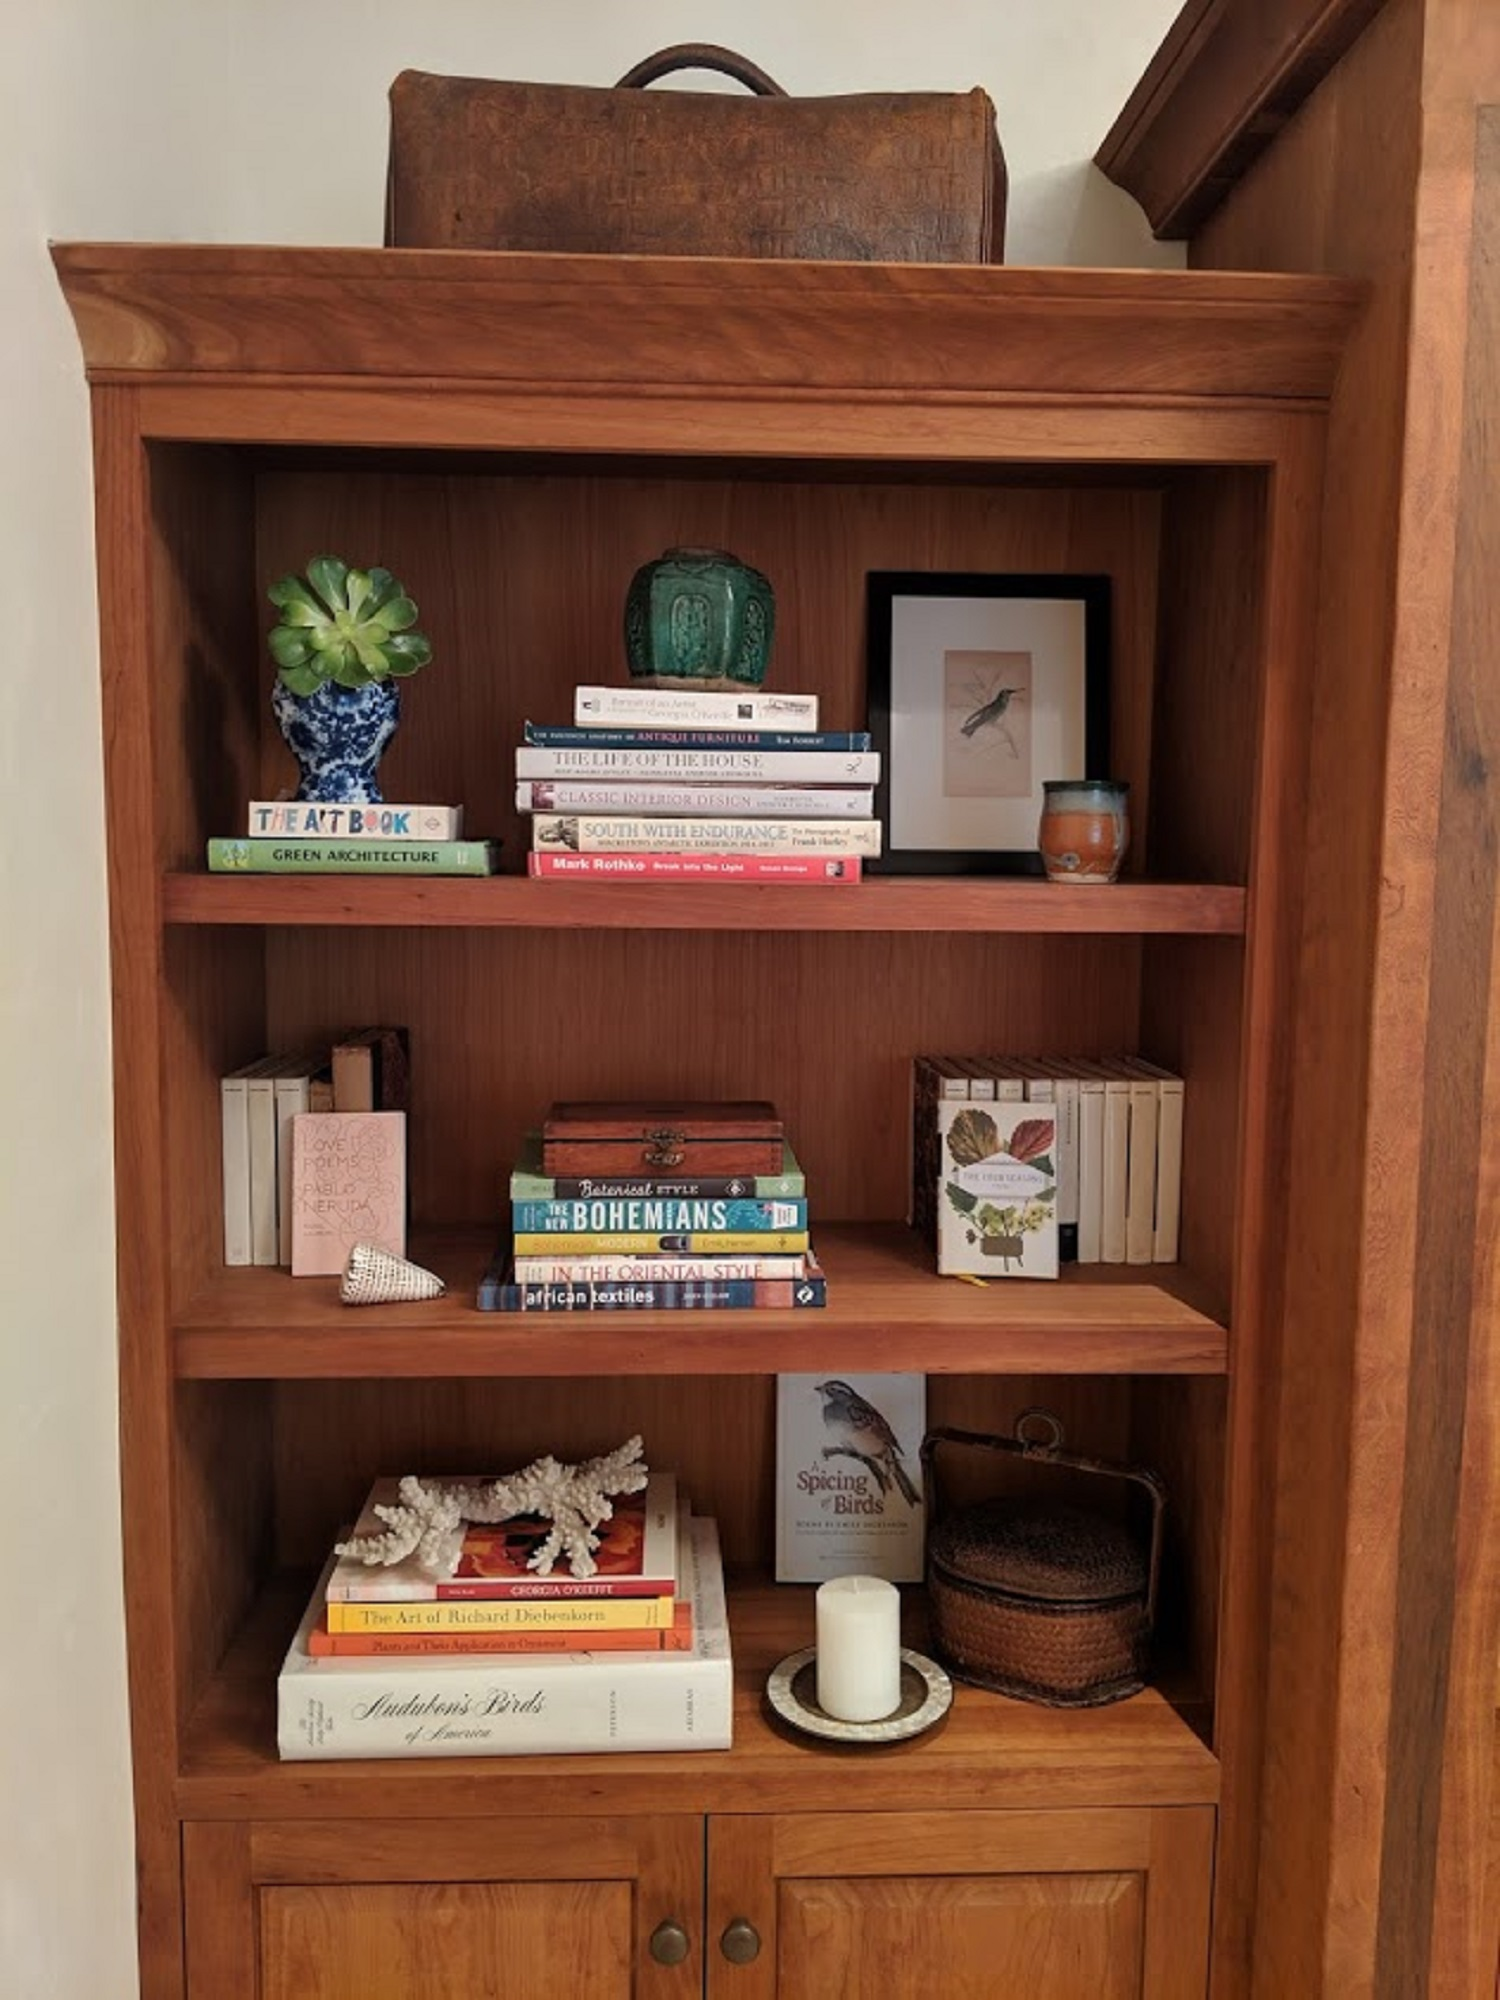 Hart Habitats often incorporates clipped succulents, from their garden, into their styled shelving. They last forever and add an organic feel and a pretty pop of green to bookcases.